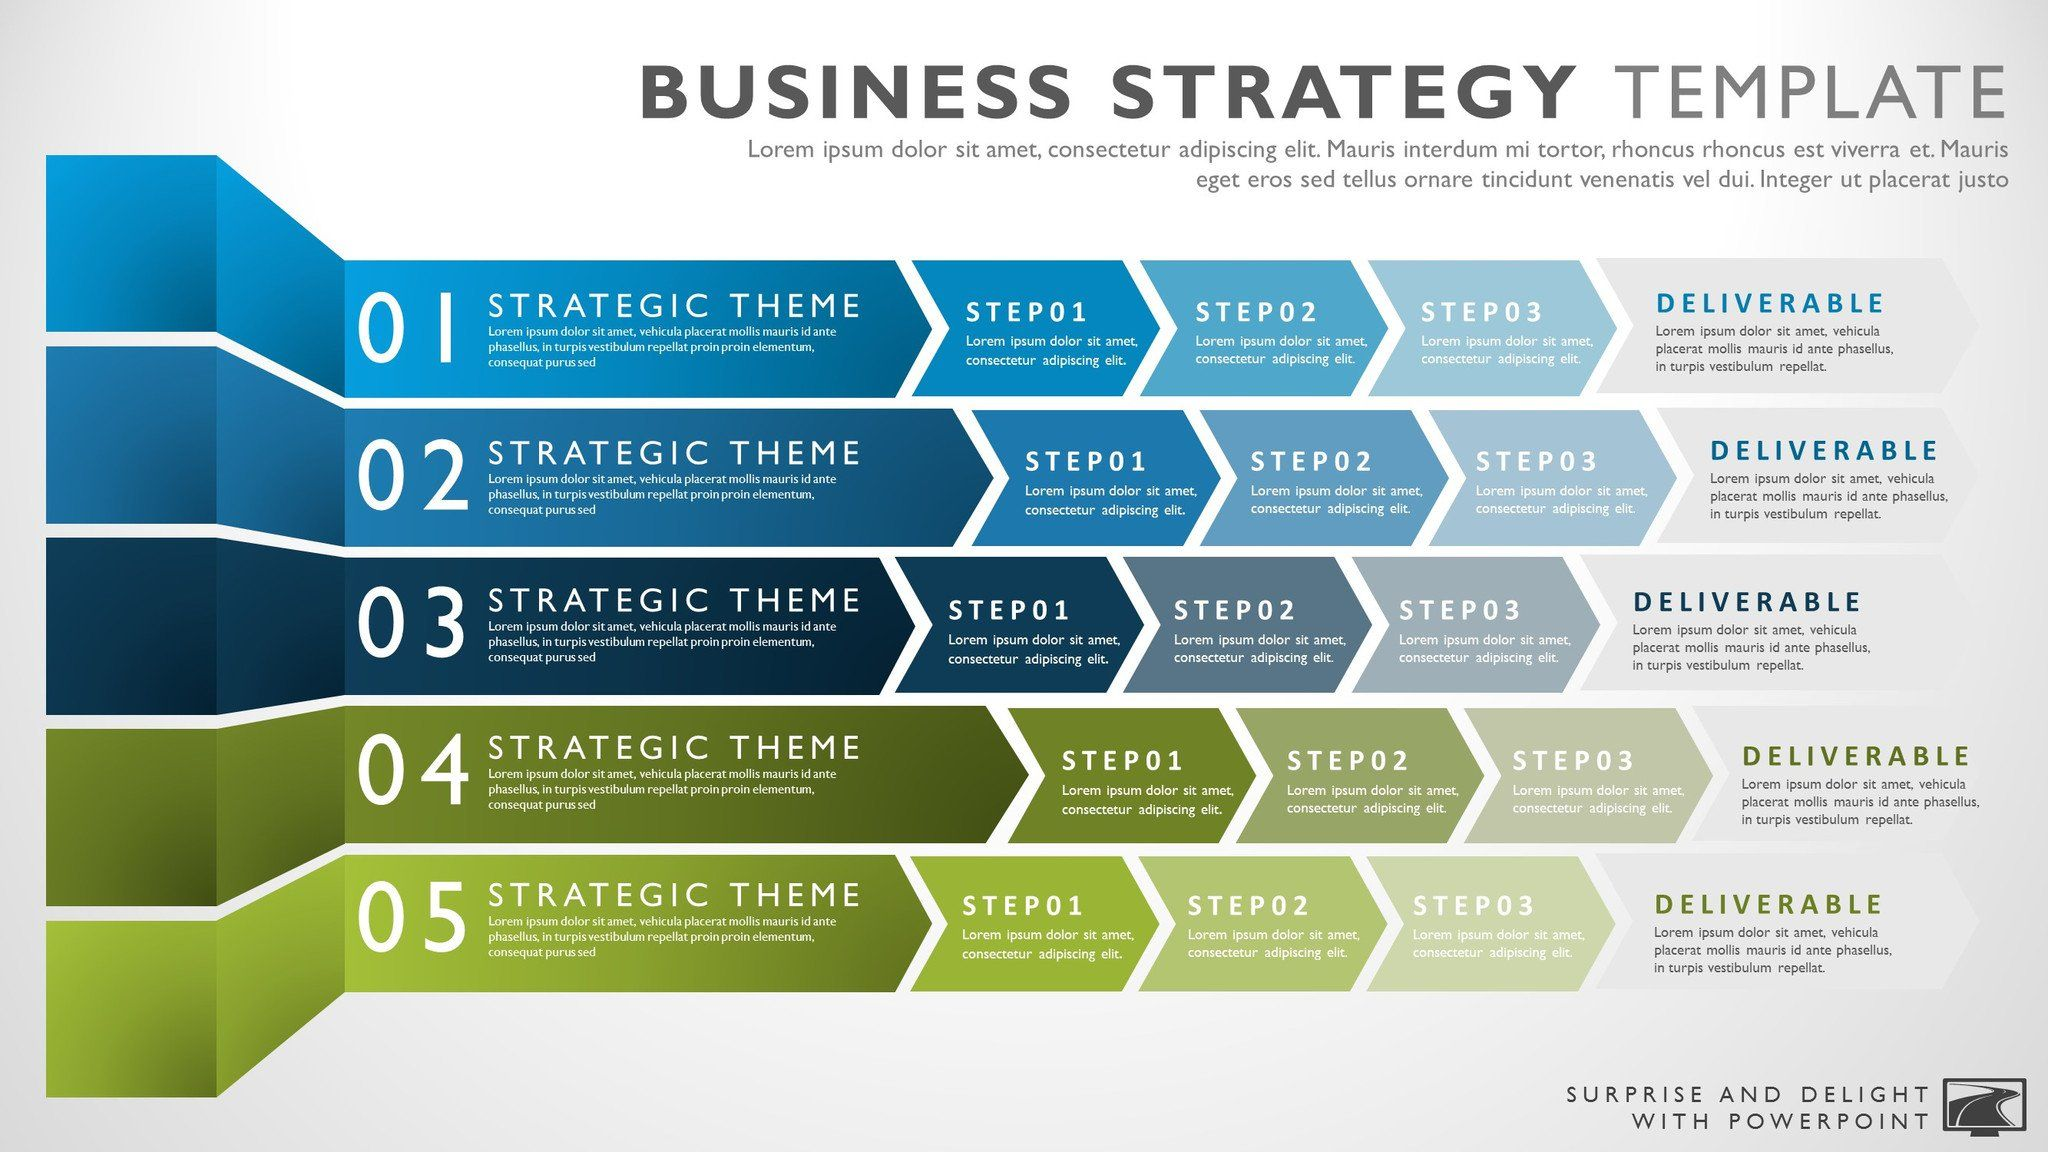 Business strategy template strategic plan pinterest business business strategy template fbccfo Image collections